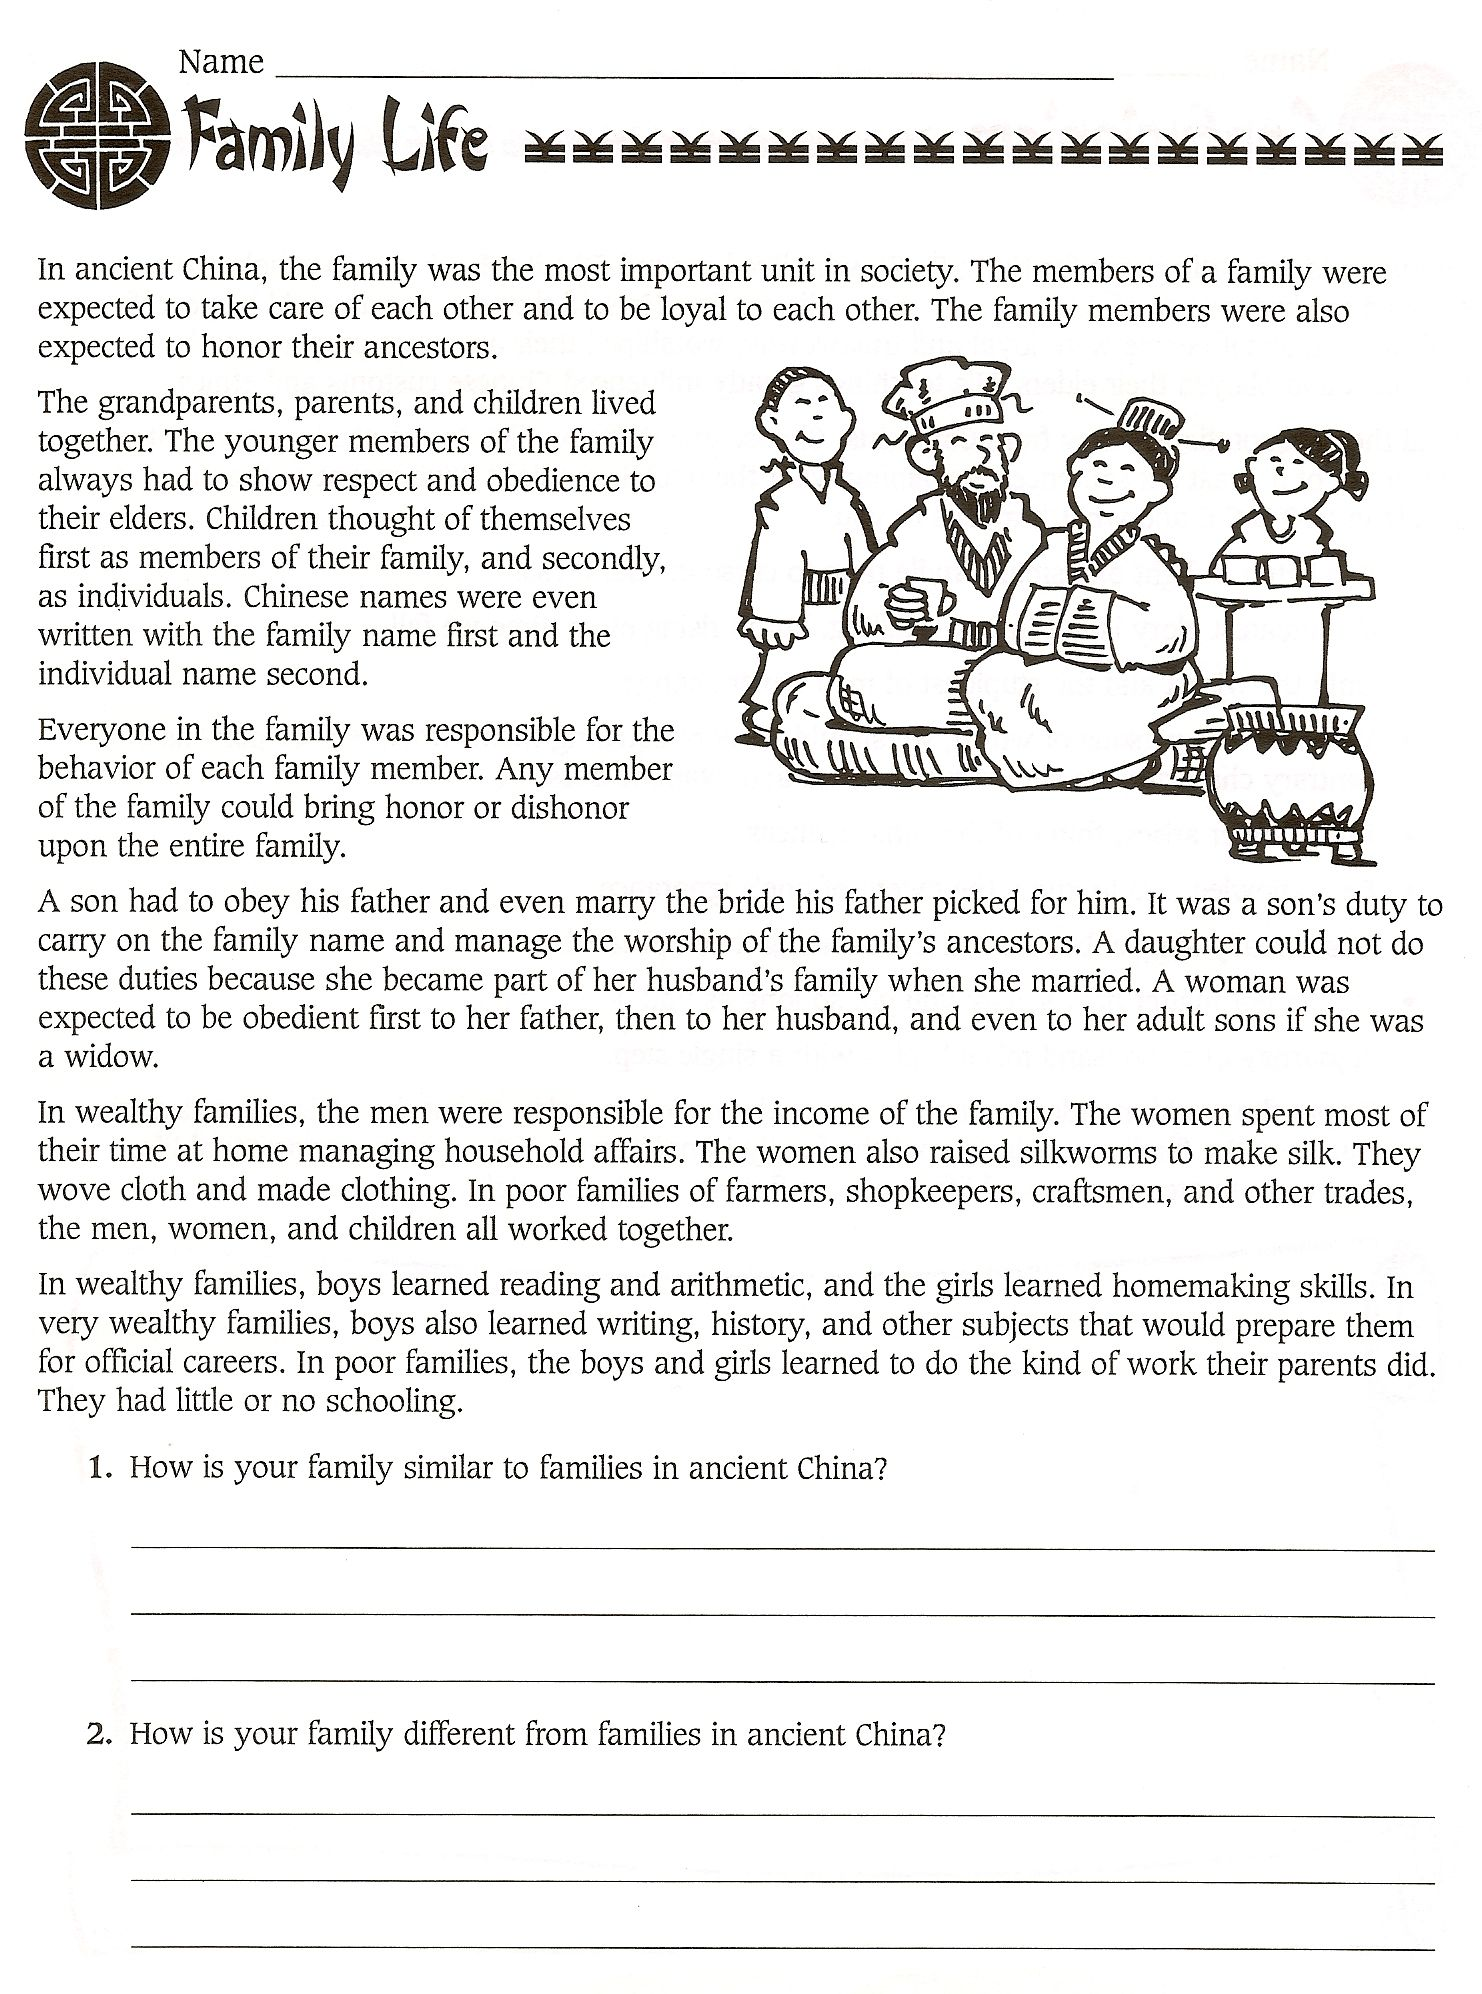 Worksheets  6th Grade Social Studies Ancient China Worksheets - f